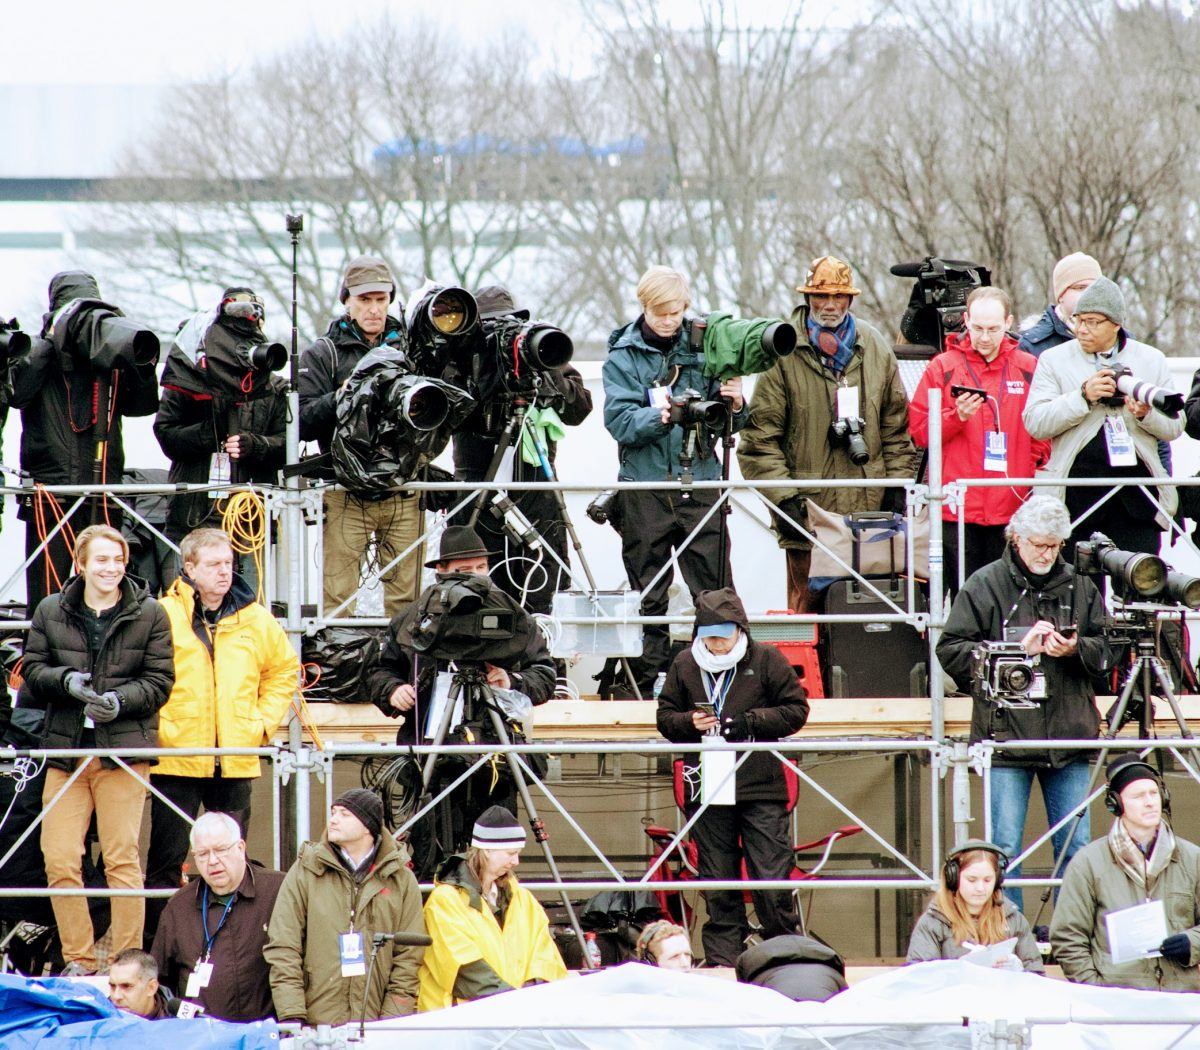 Photographers, including the Washington Informer photographer Roy Lewis capture the Inauguration of the 45th President. /Photo by Shevry Lassiter